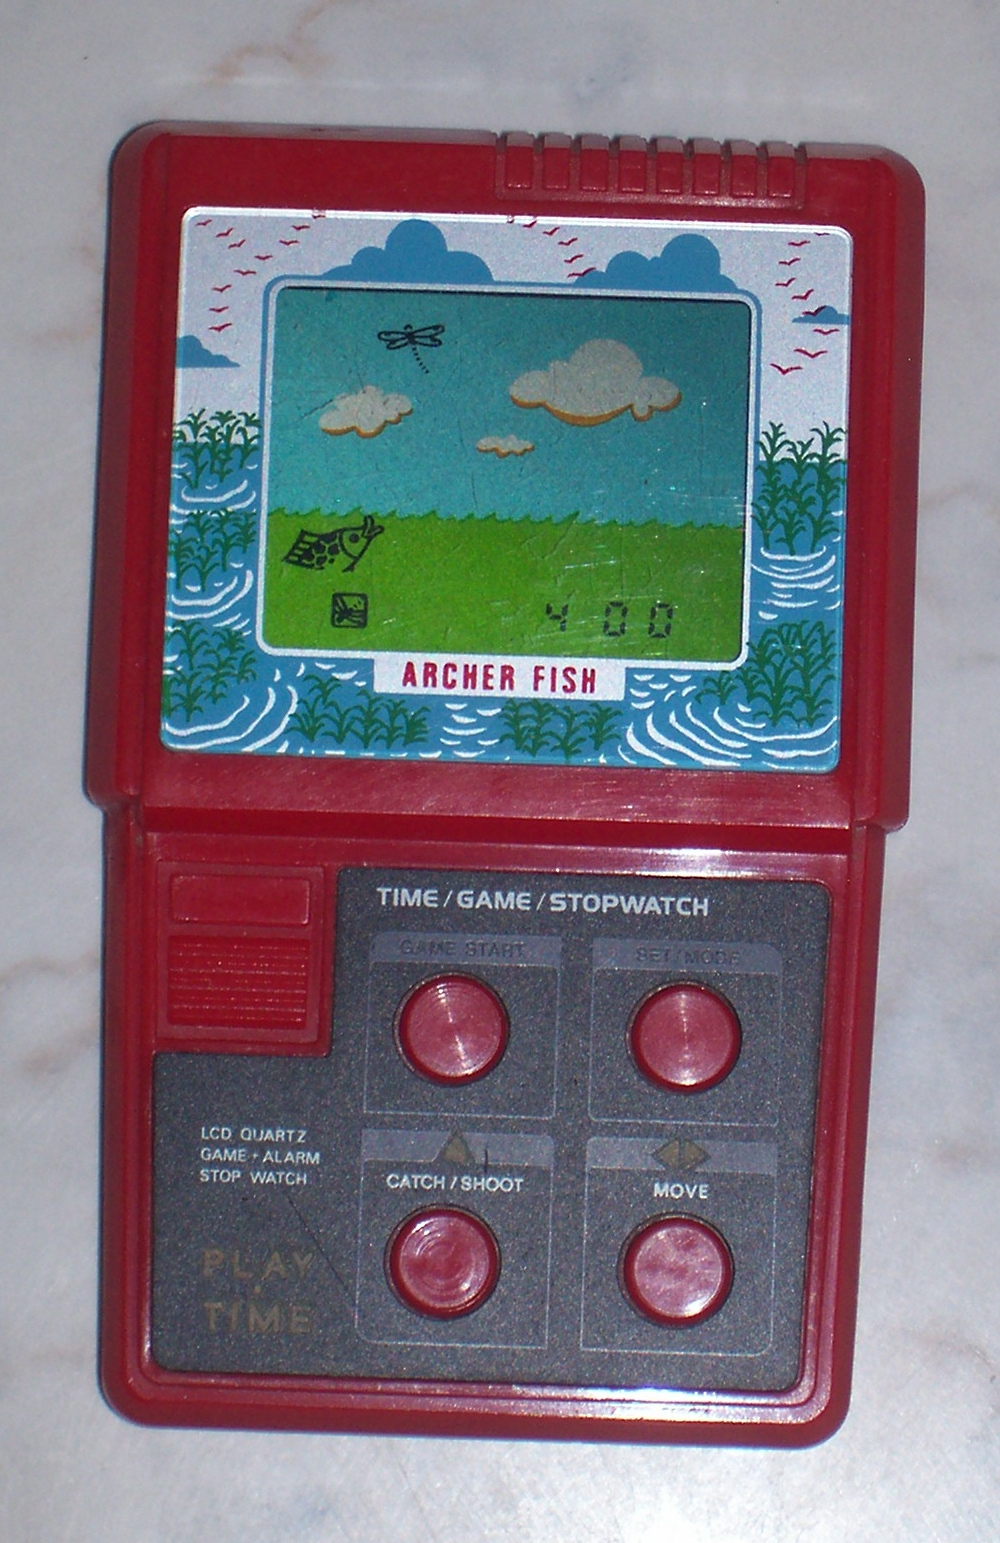 Handheld empire game masudaya archer fish for Archer fish for sale